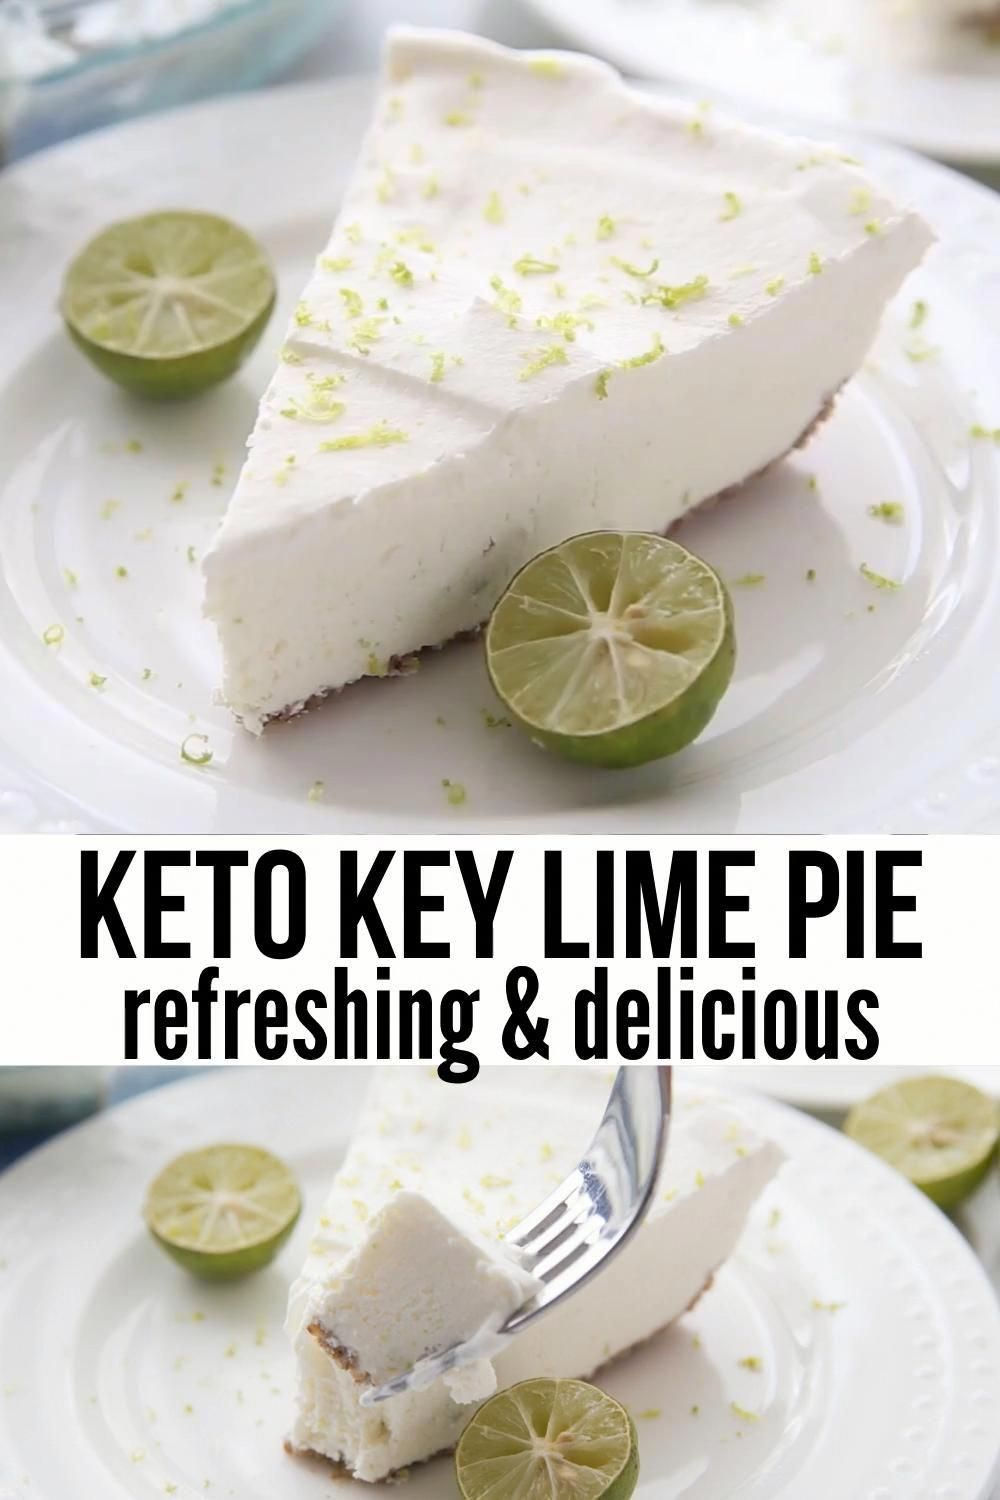 Best Keto Key Lime Pie with Pecan Crust (Easy!)